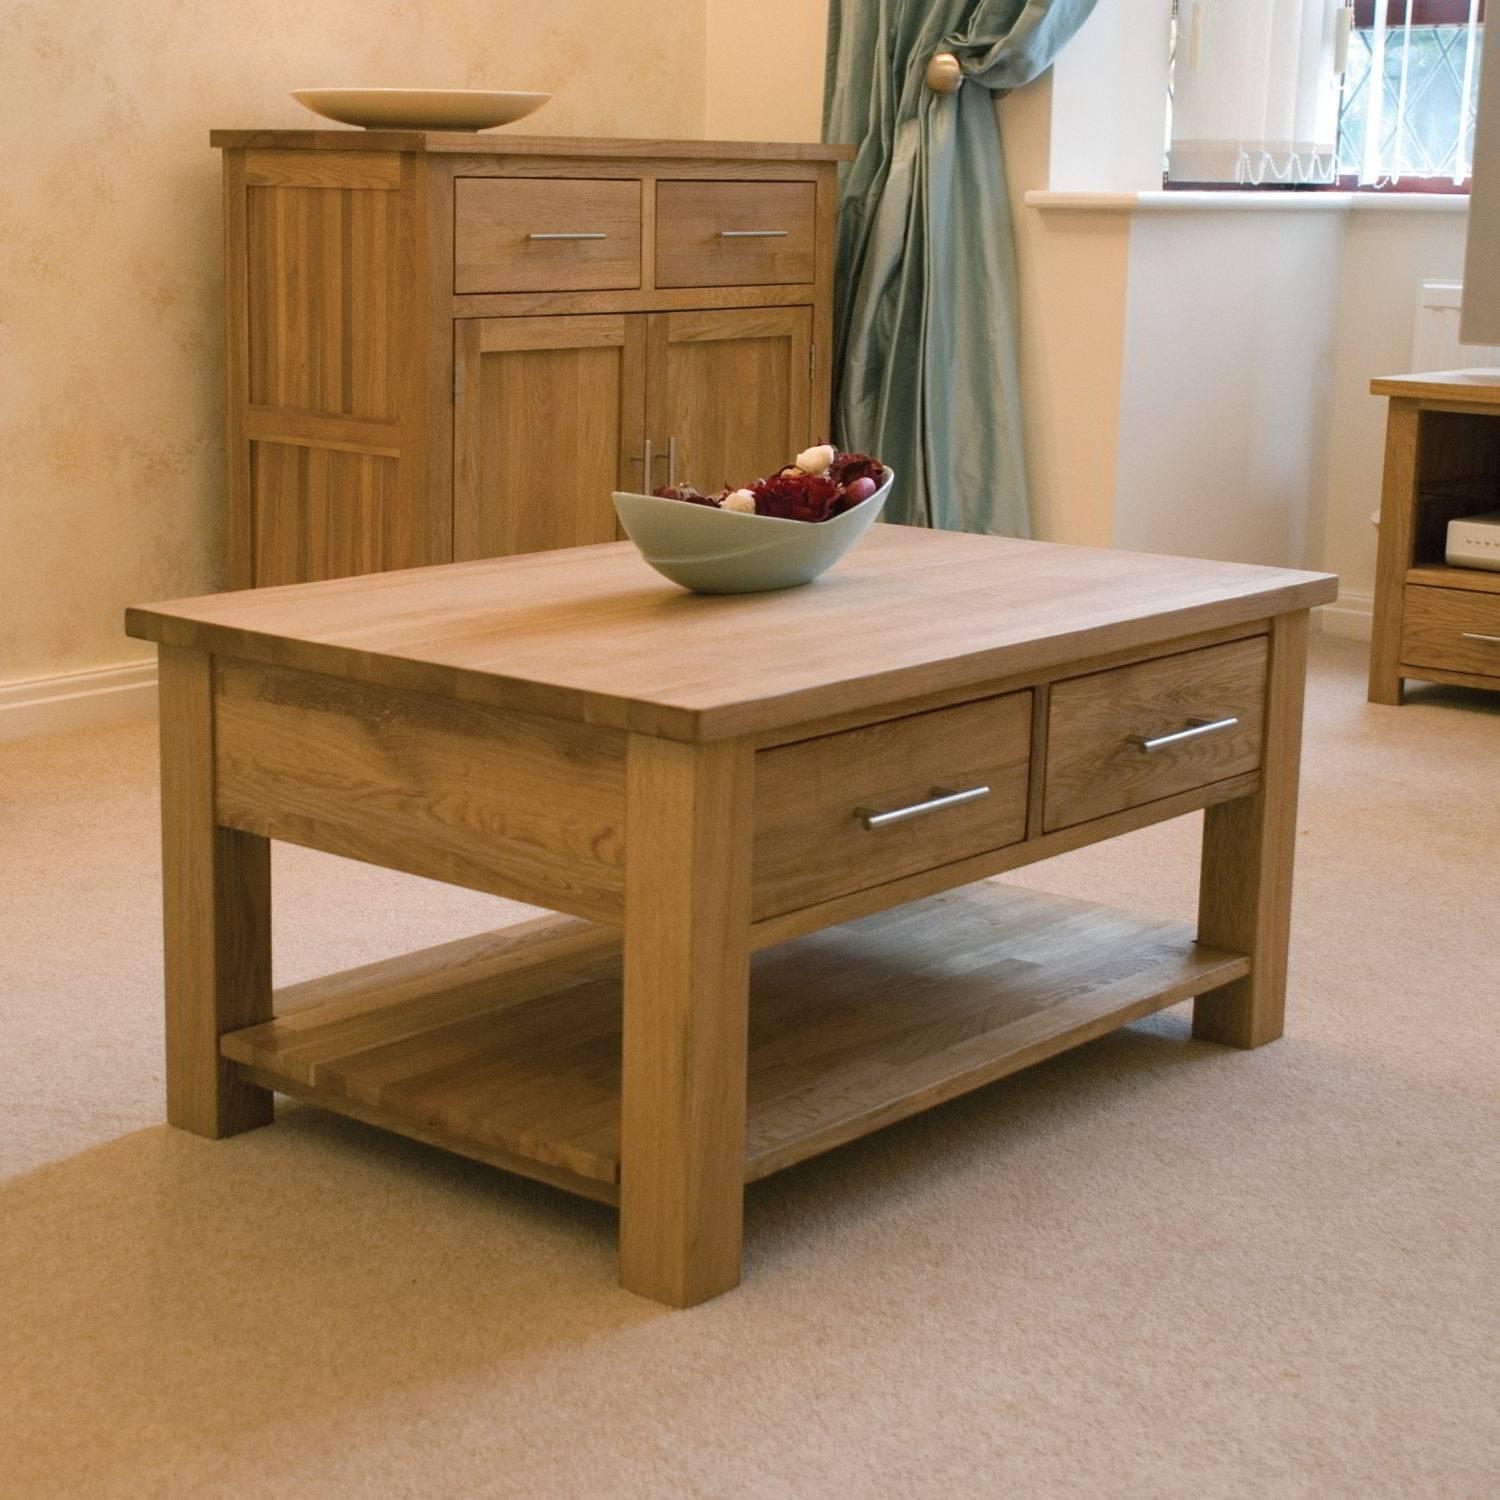 Oak Coffee Table With Drawers Ireland | Coffee Tables Decoration with Coffee Tables With Shelves (Image 25 of 30)